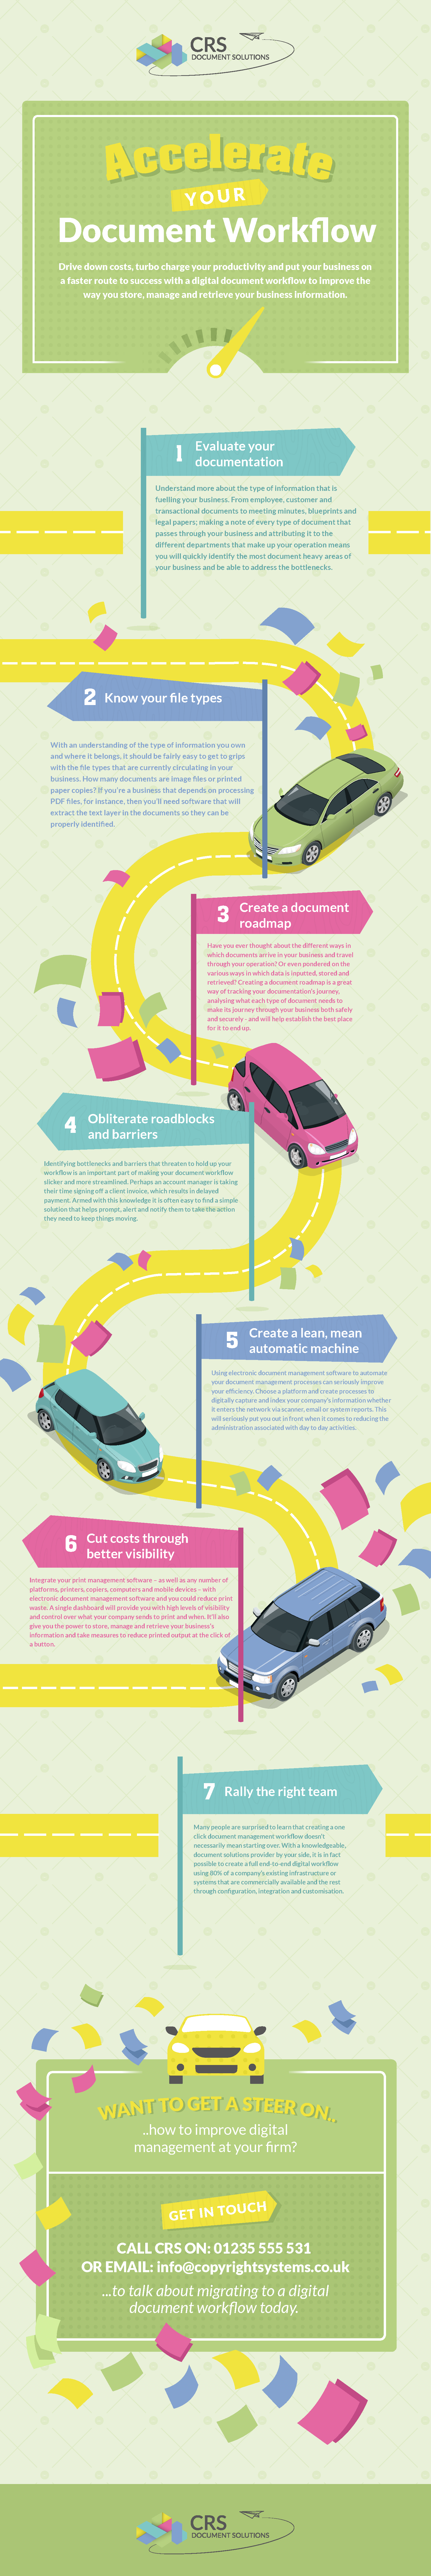 Accelerate Workflow Infographic